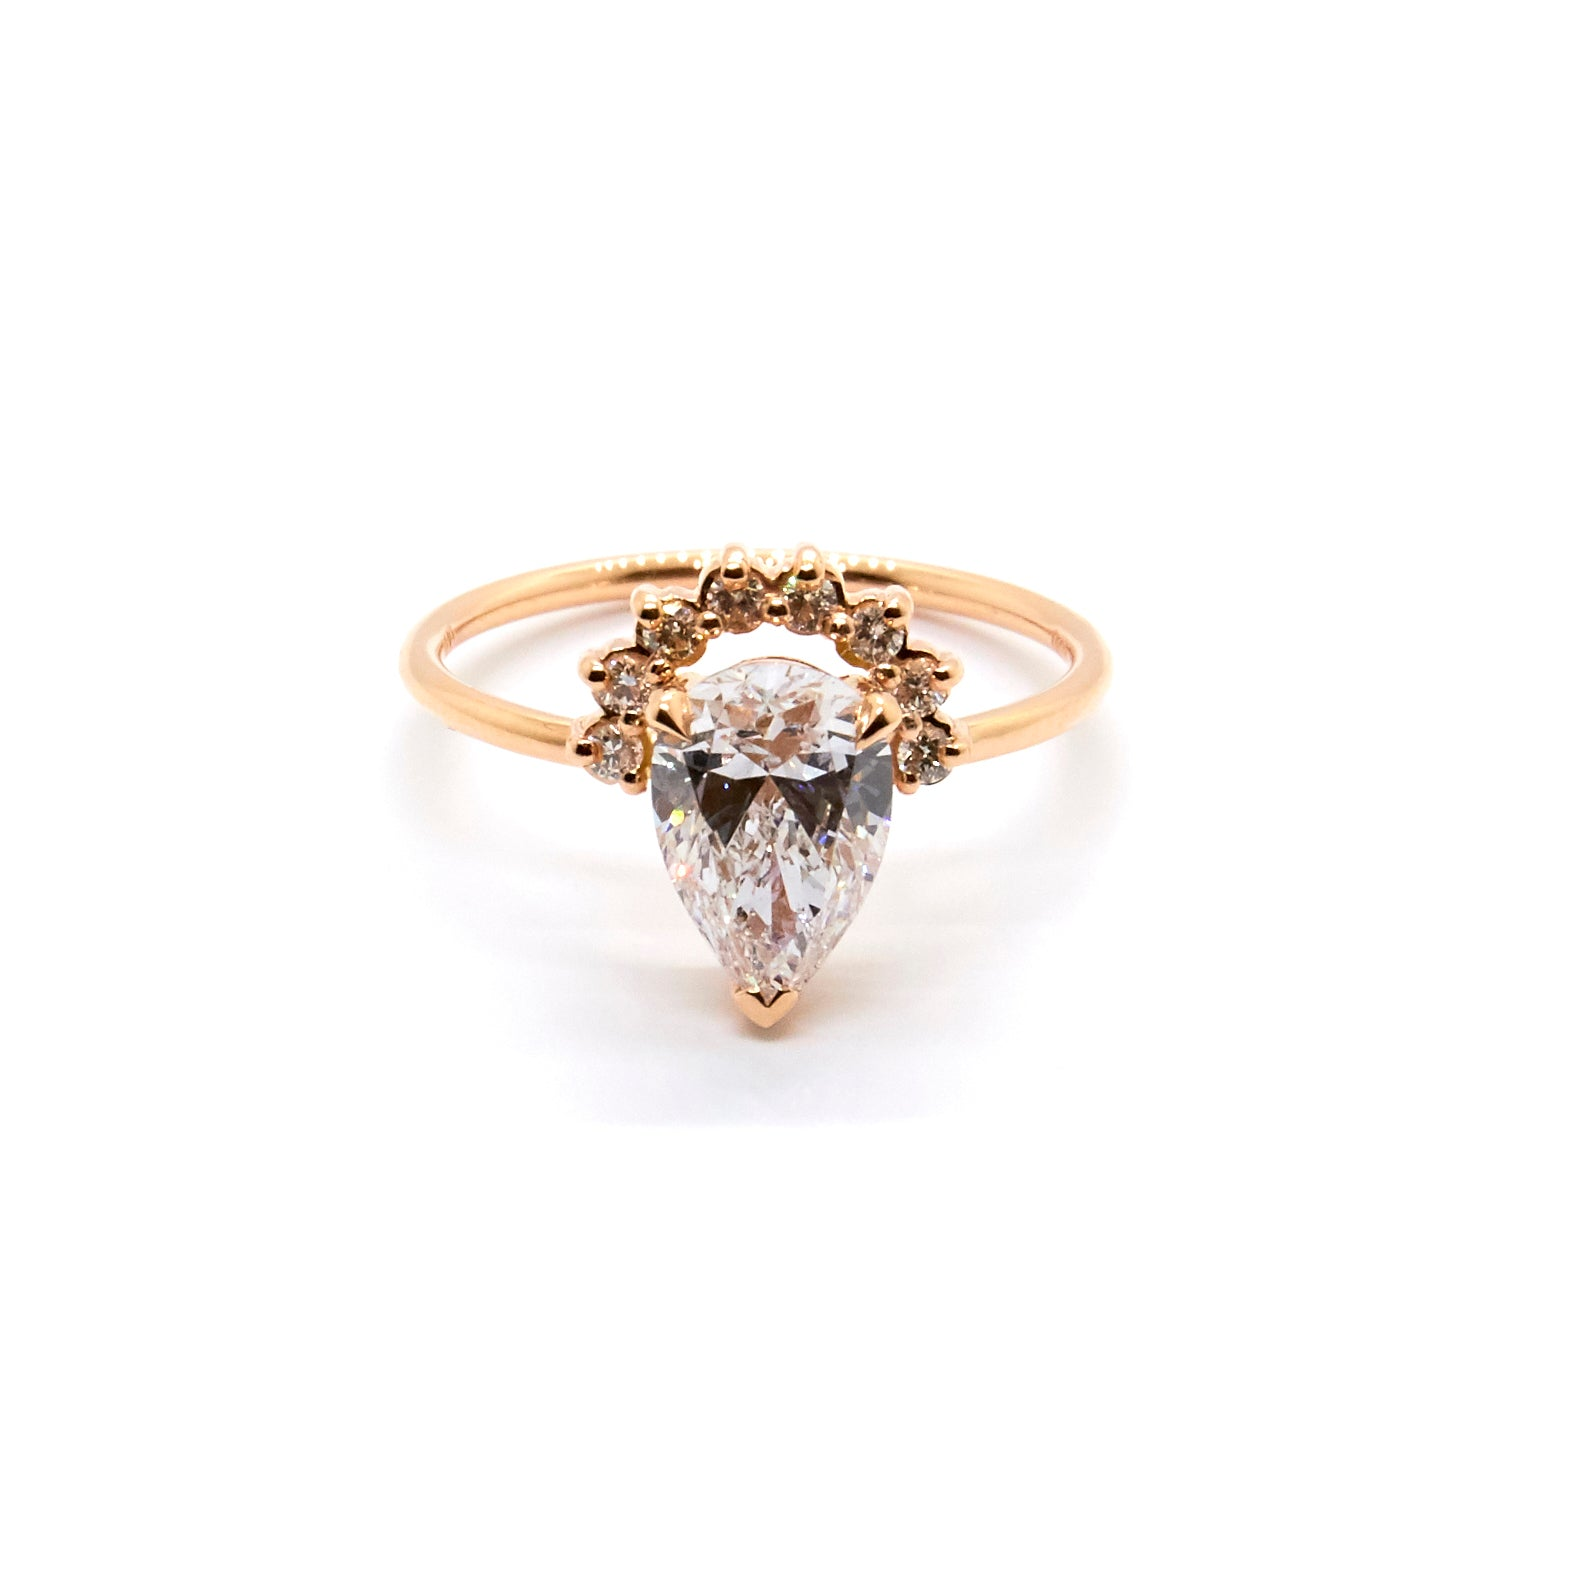 Pear Cut Diamond Ring | Bespoke 1602